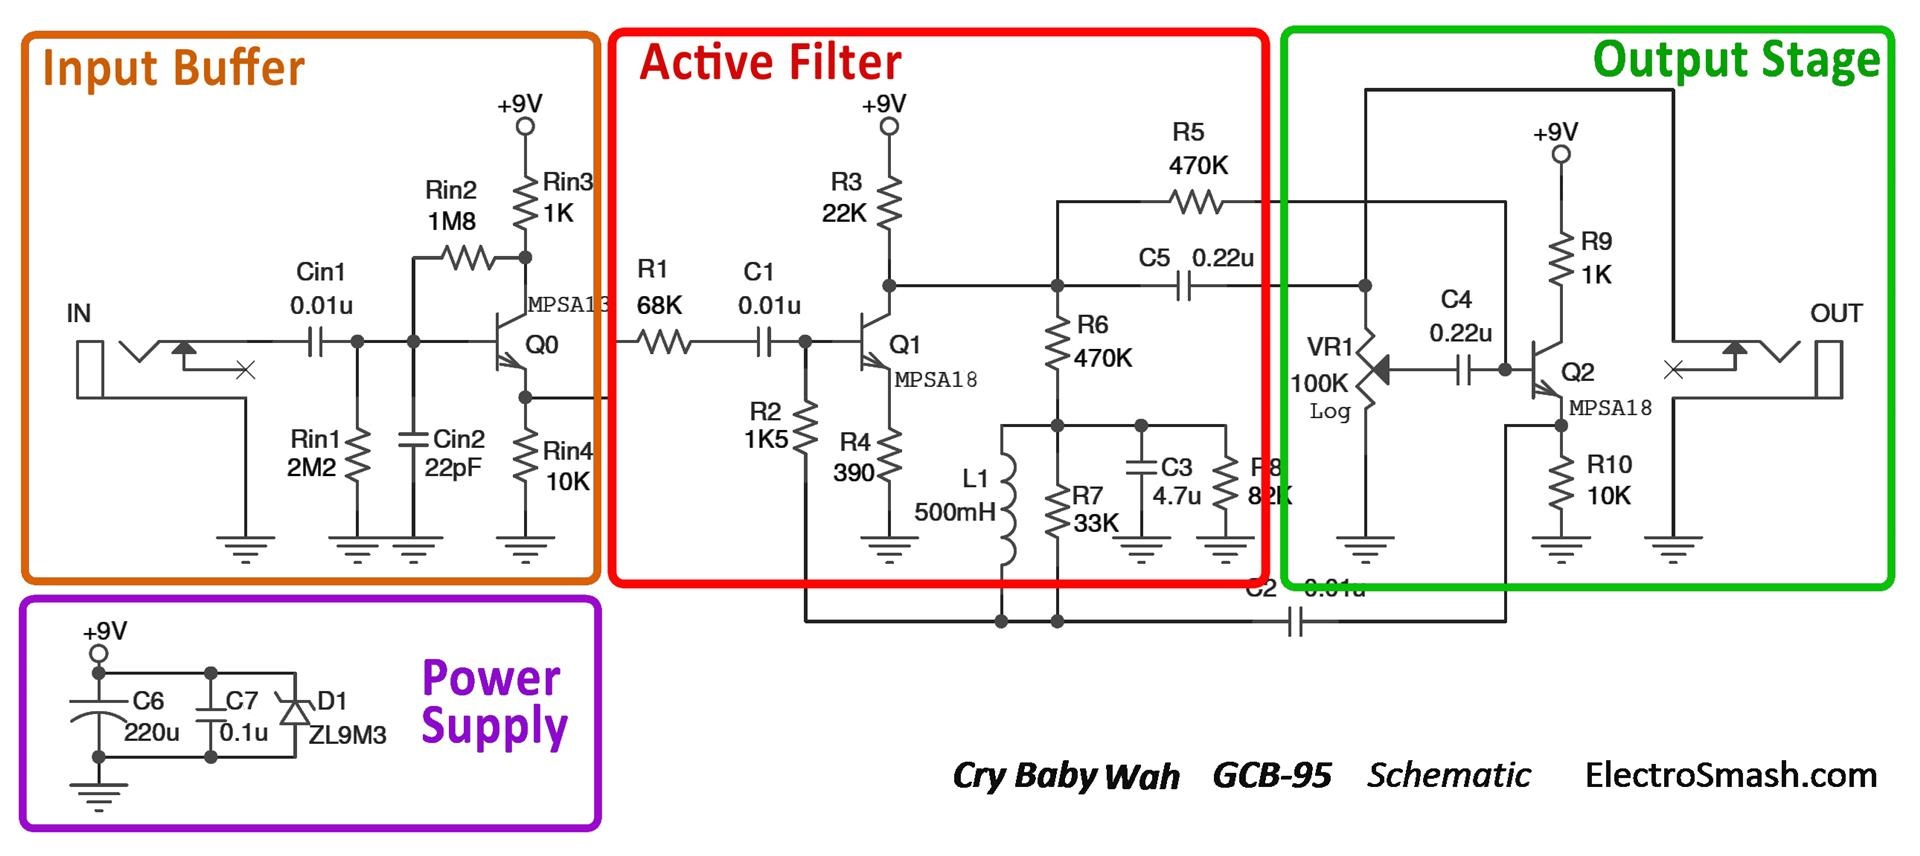 http://www.electrosmash.com/images/tech/crybaby/cry-baby-wah-gcb-95-schematic-parts.jpg